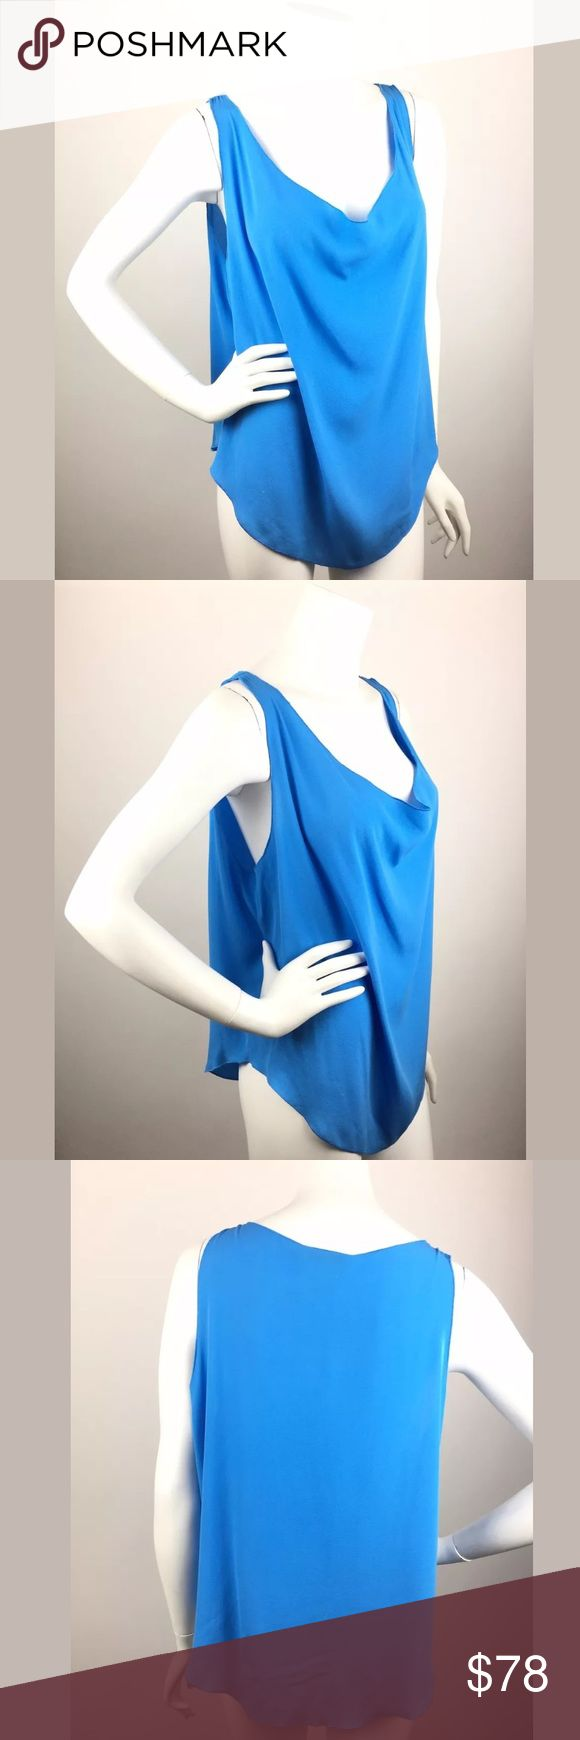 """Alice + Olivia $195 100% Silk Loose Tank Shirt Top Alice + Olivia $195 100% Silk Blue Loose Sleeveless Tank Shirt Oversized Top Condition: Excellent Oversized fit that will fit many sizes; see measurements below to compare to your own  Approximate measurements taken flat: Bust (underarm to underarm): 24"""" Length (top of the shoulder to hem): 28"""" Alice + Olivia Tops Tank Tops"""